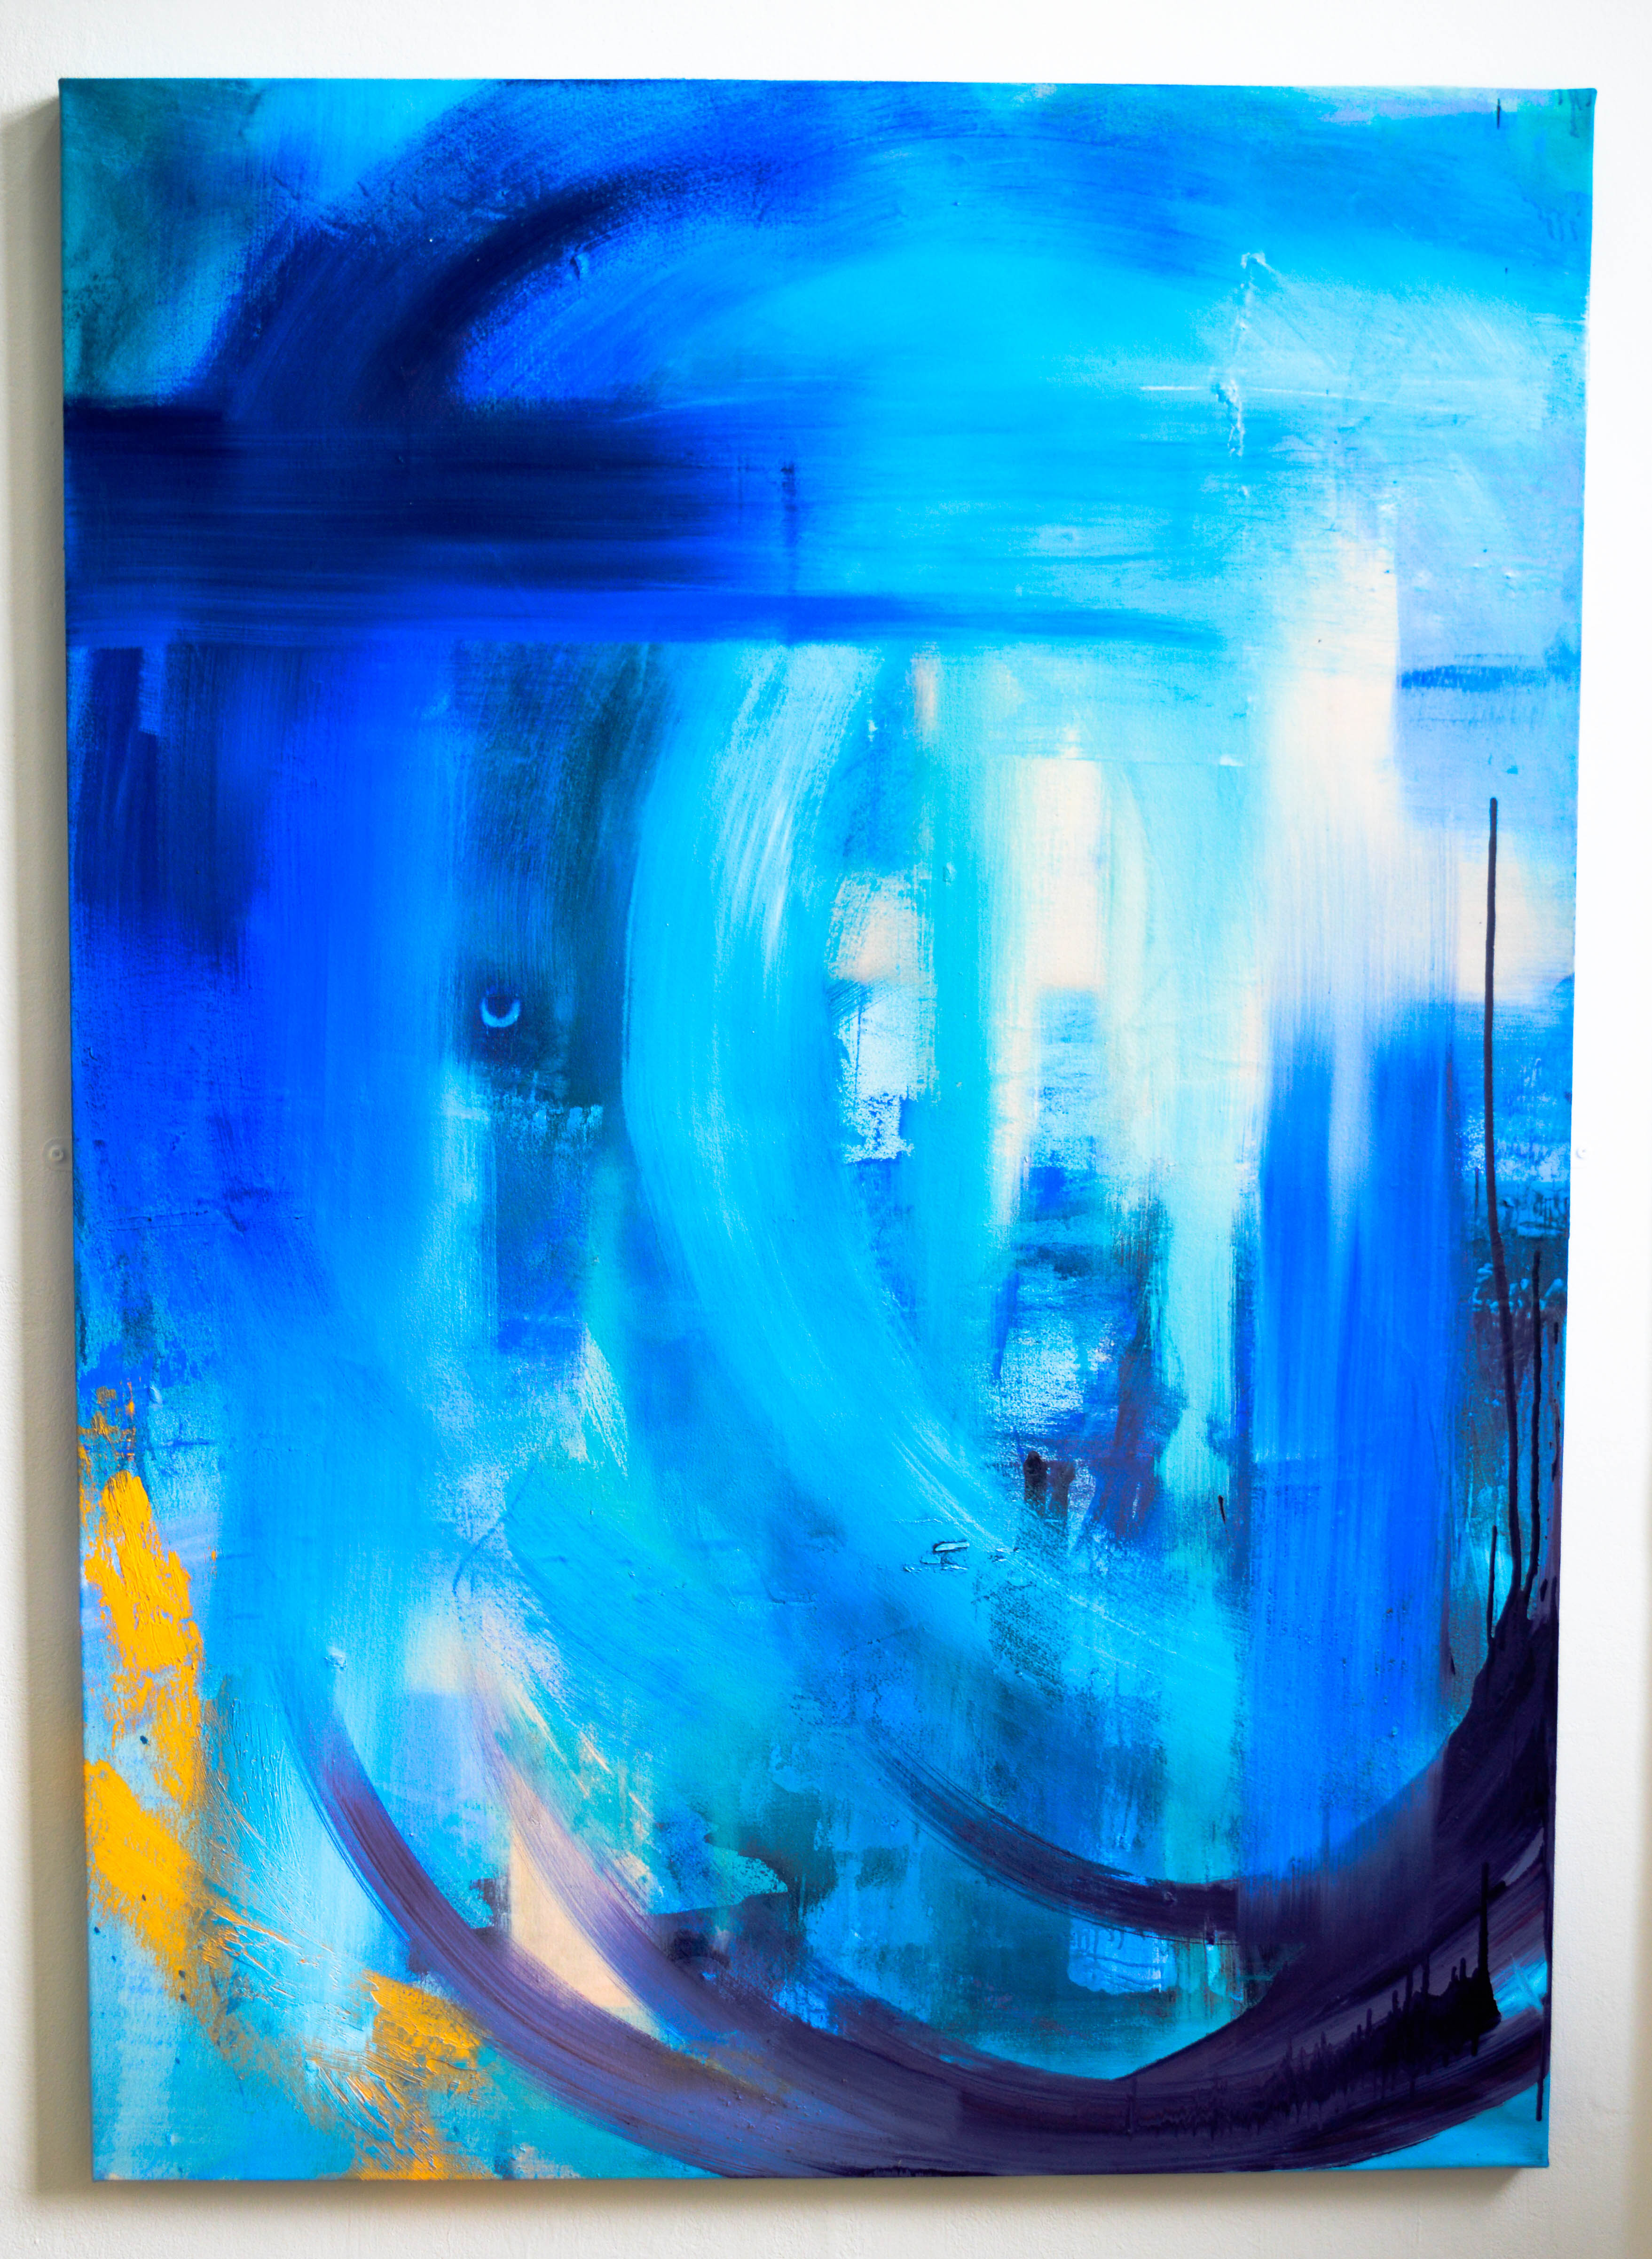 Blue Series 3.1. Oil on canvas. 190.8x114.5cm. For sale.